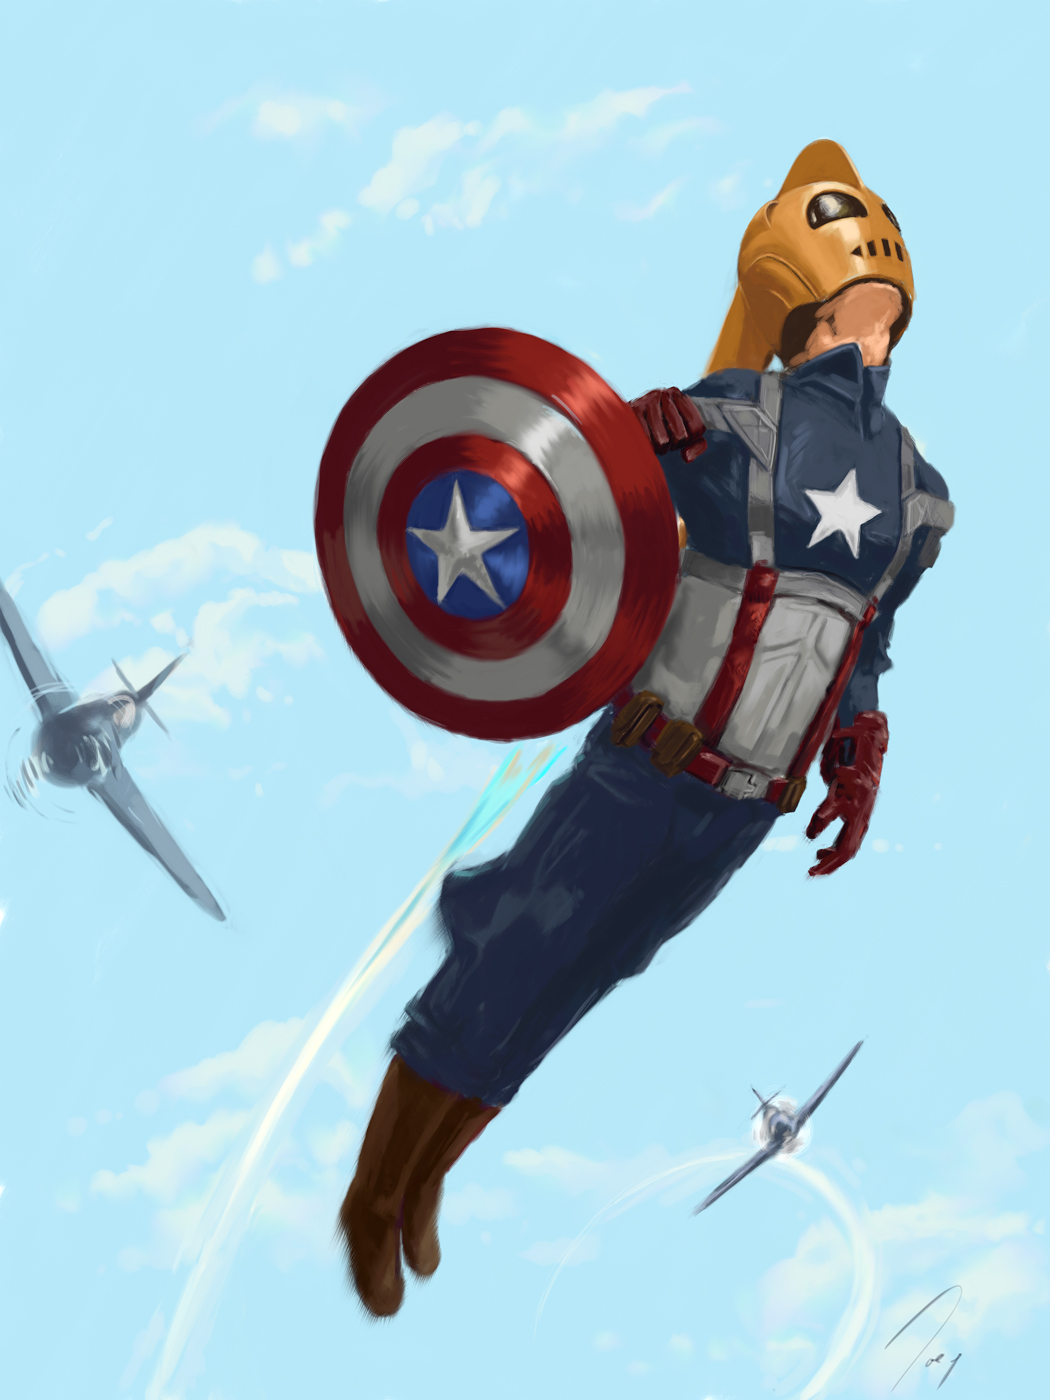 The Captain Rocketeer